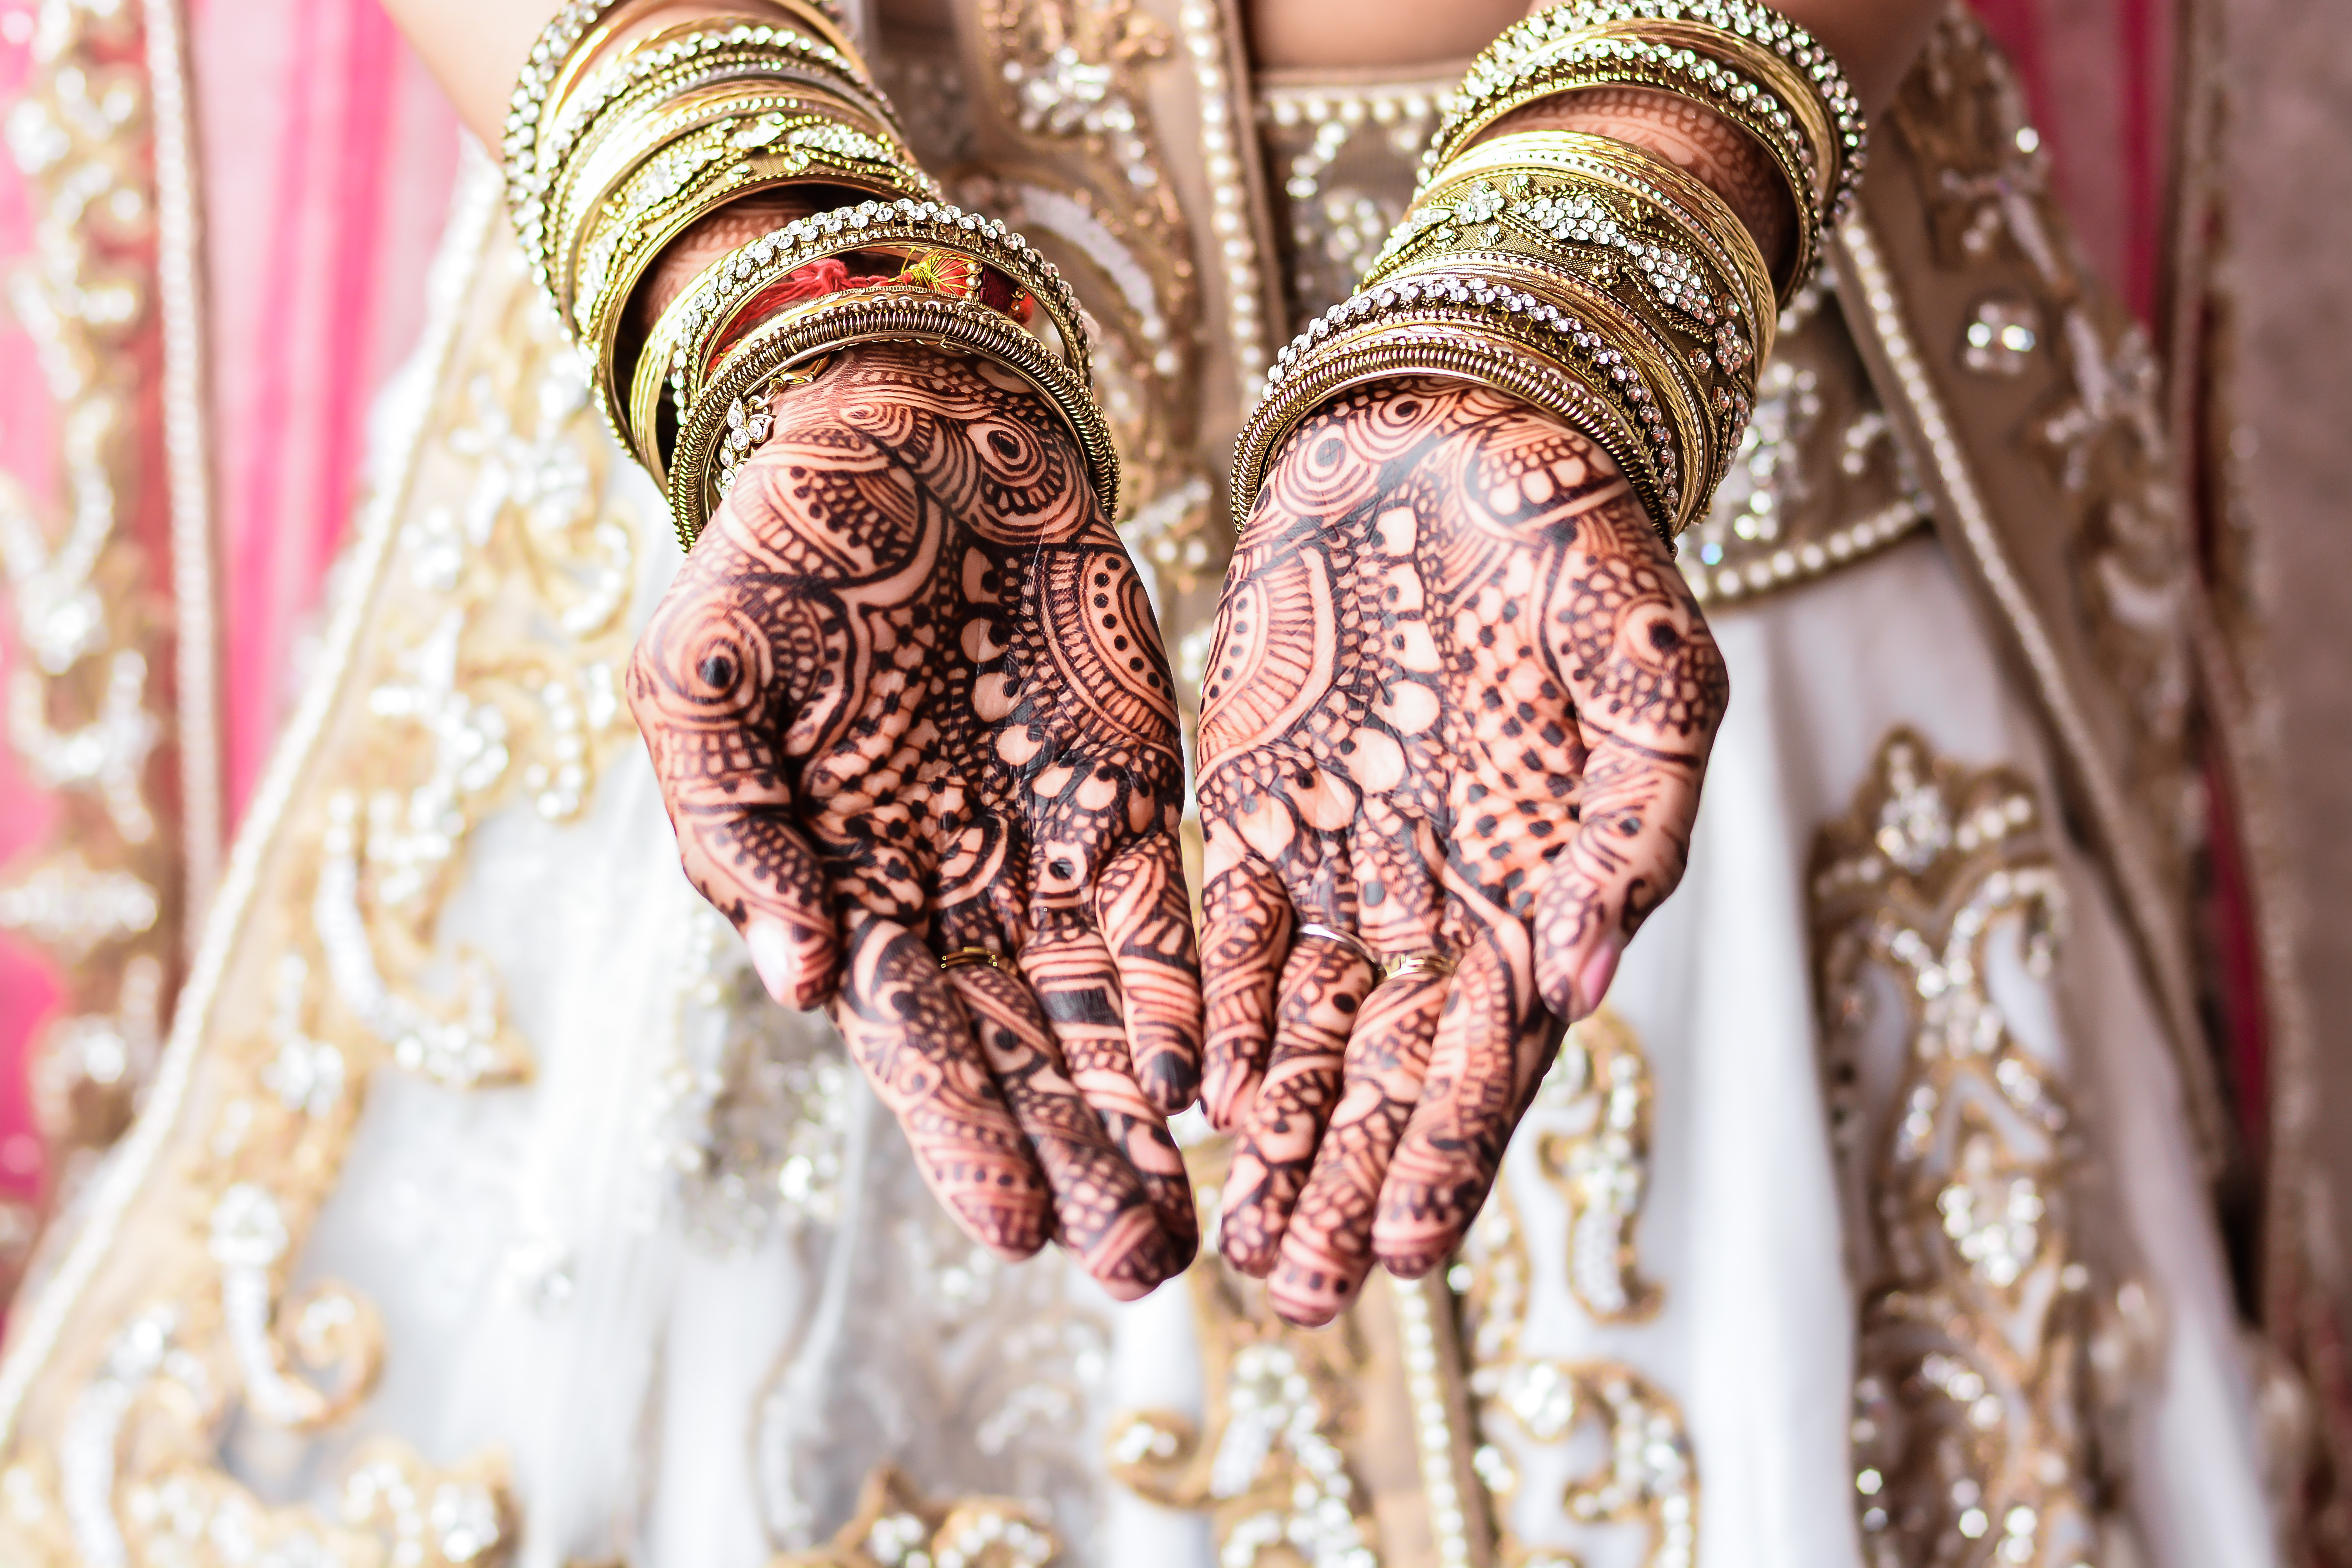 Mehndi Ceremony Quotes In : Tattoo design femalele tattoos tumblr designs quotes on side of